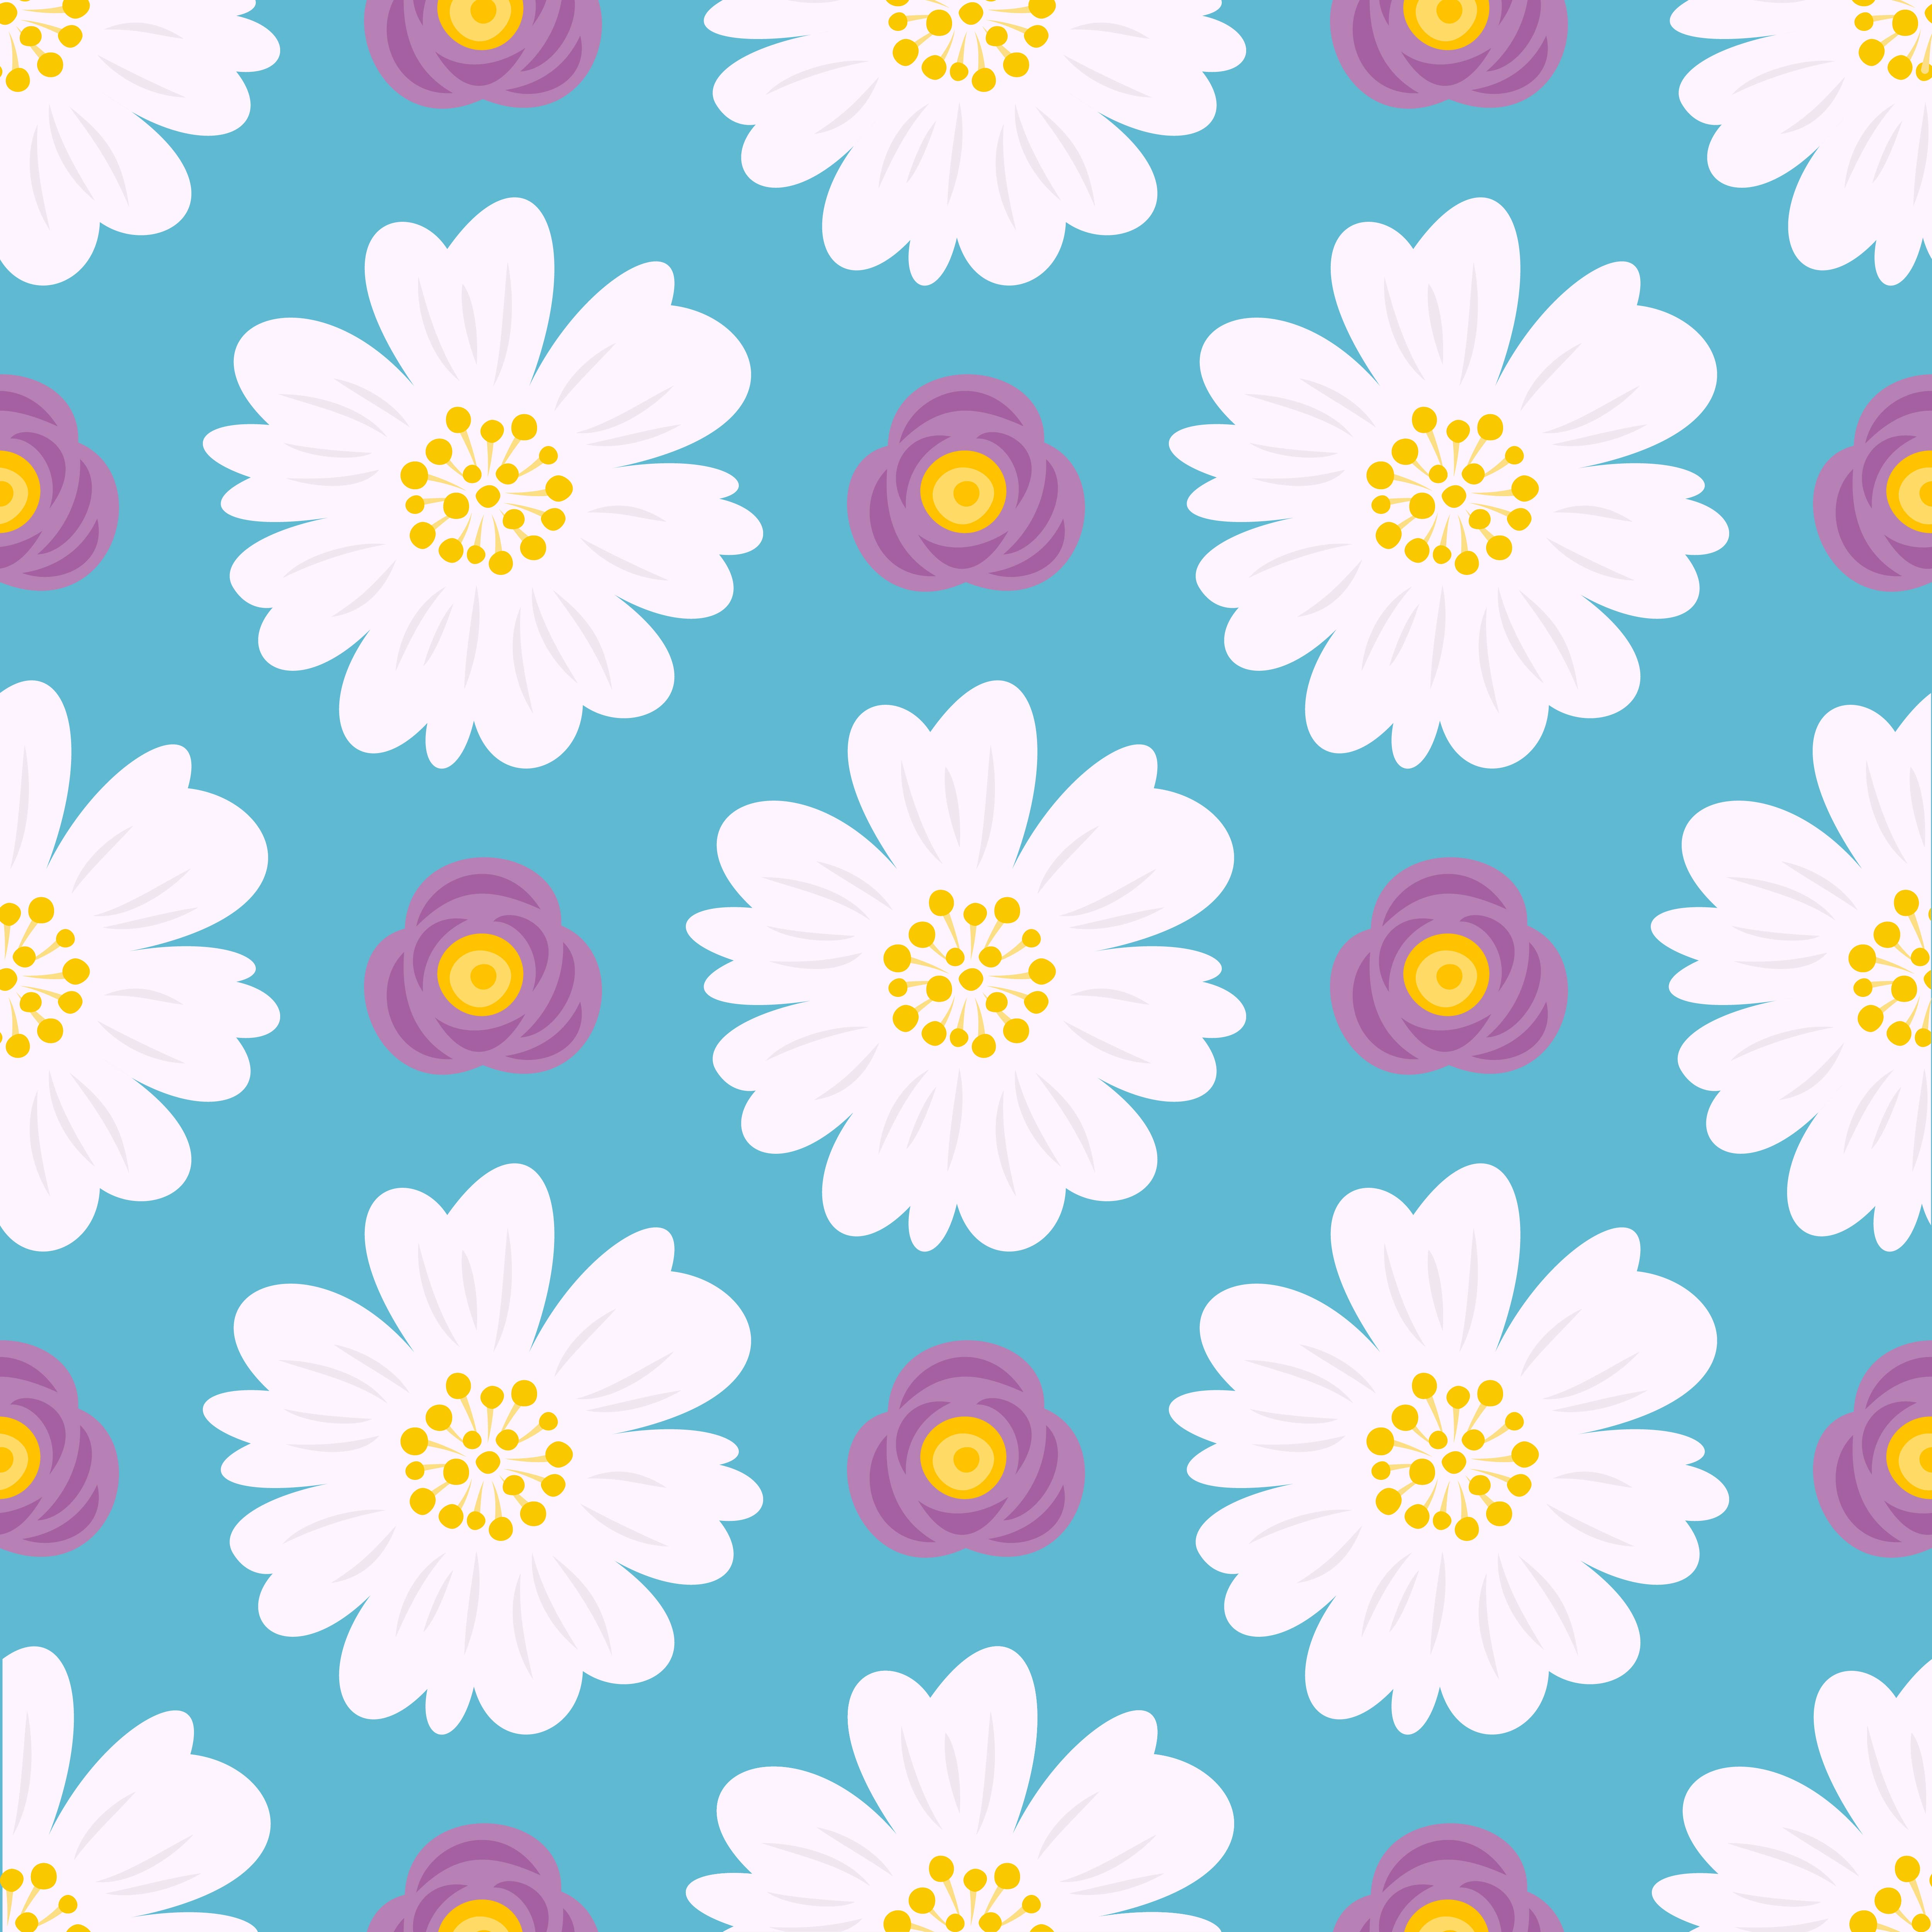 Floral Seamless Pattern, Flat Design For Use As Background